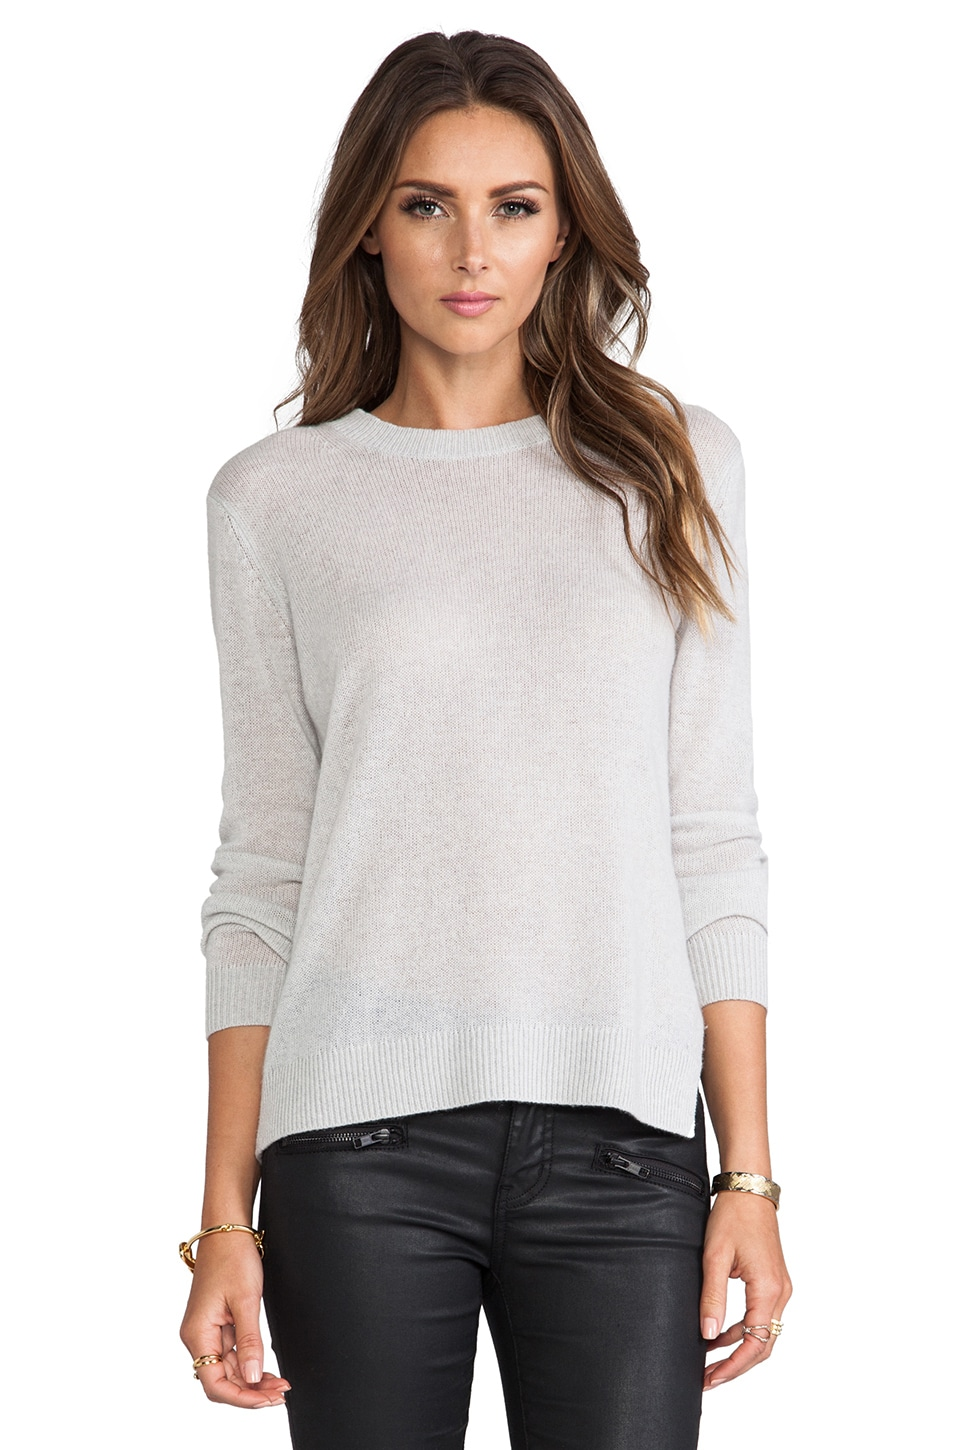 Theory Boslyn Sweater in Pale Heather